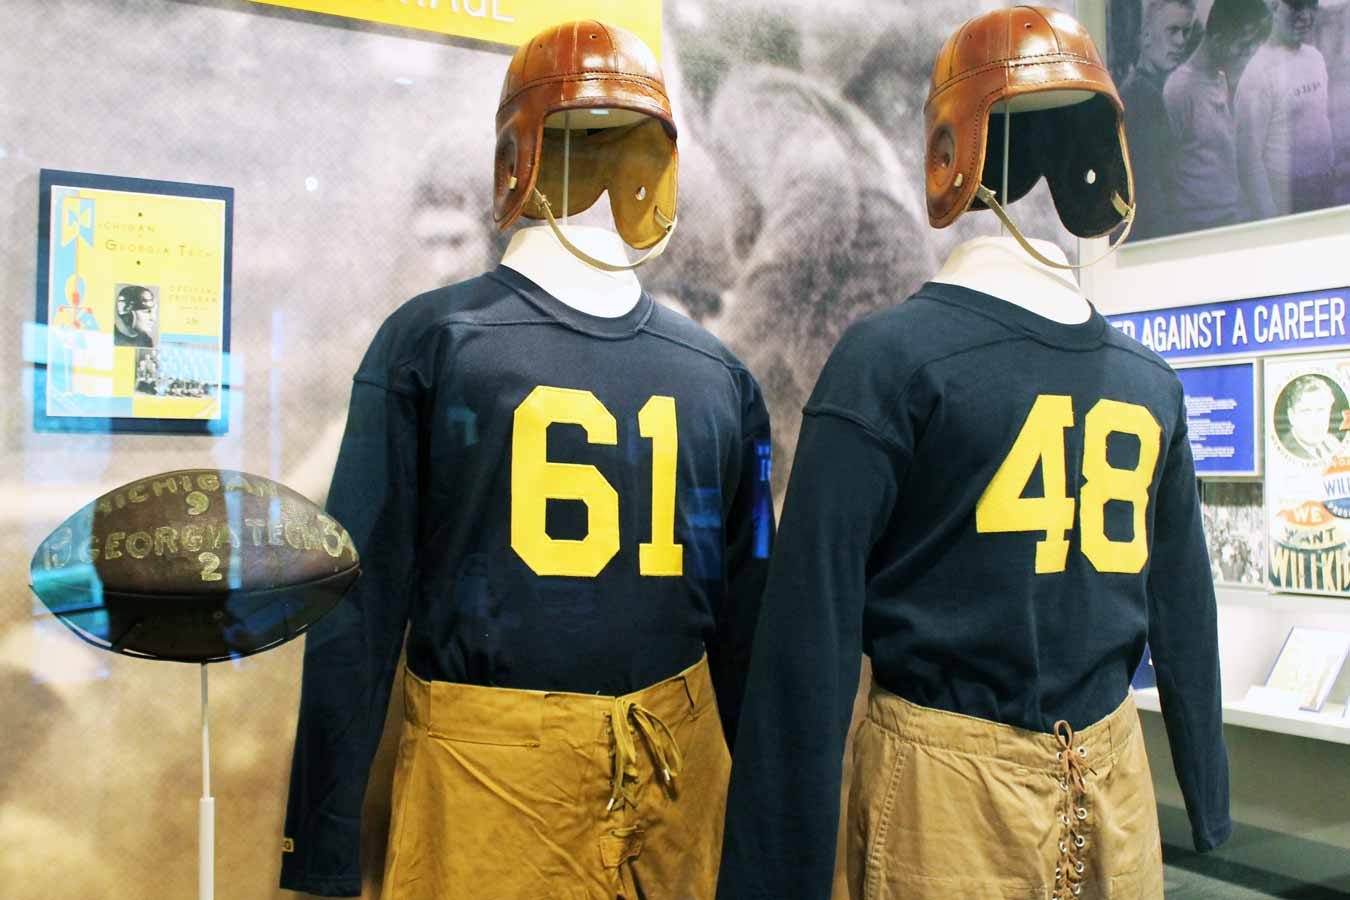 Vintage University of Michigan Football Uniforms at the Gerald R. Ford Presidential Museum /// Gerald R. Ford Presidential Museum: Legacy Of An Unelected President - (via Wading in Big Shoes)